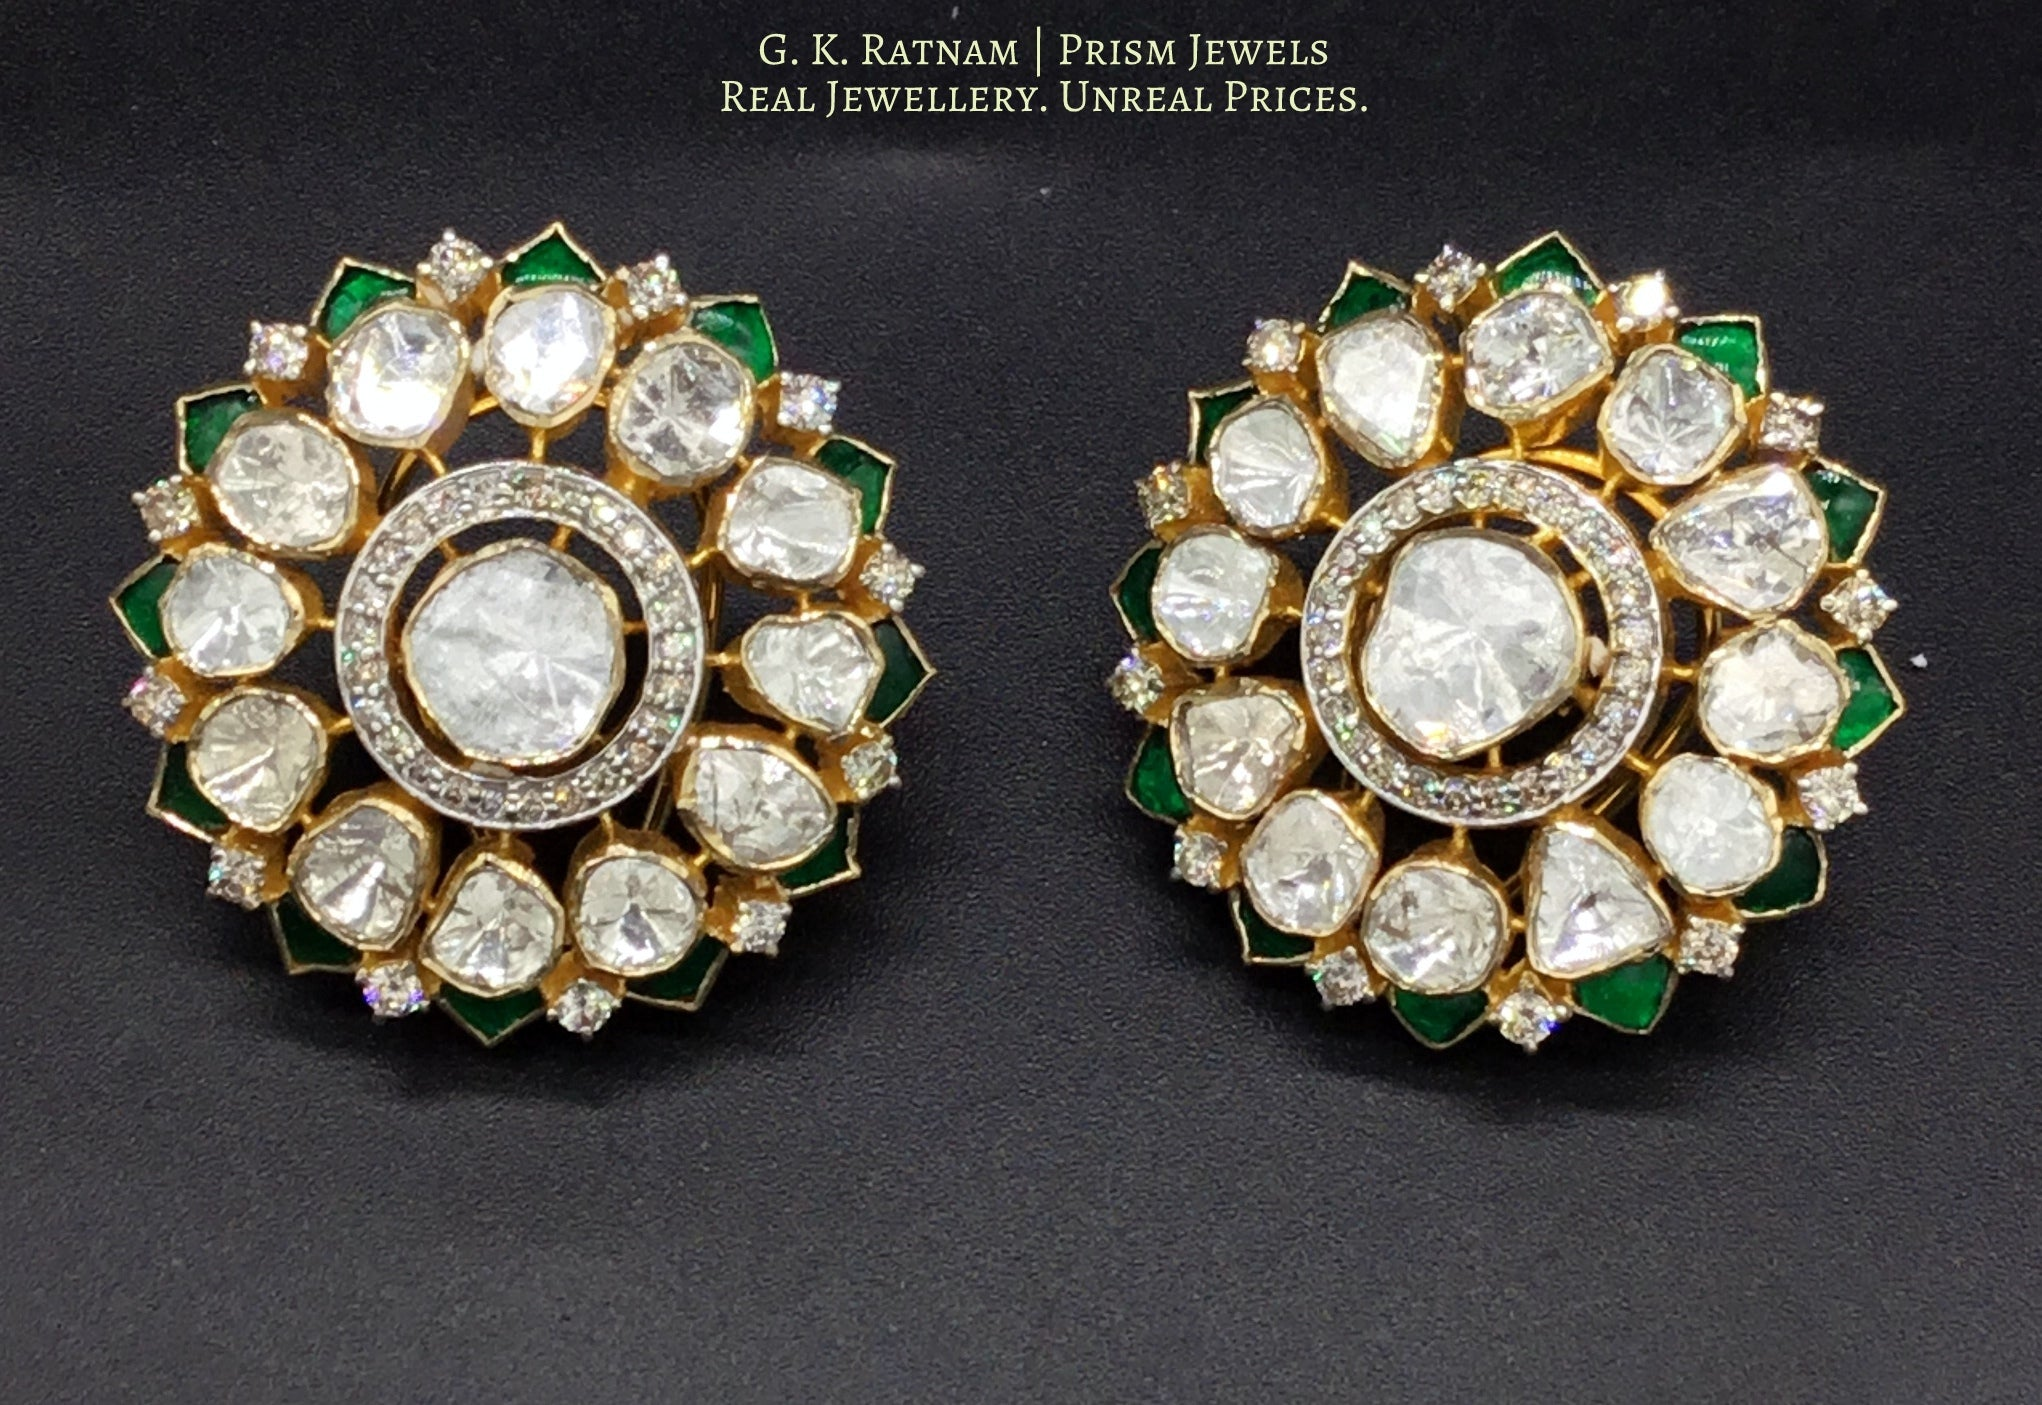 14k Gold and Diamond Polki Open Setting Karanphool Earring Pair with emerald-grade green stones - gold diamond polki kundan meena jadau jewellery